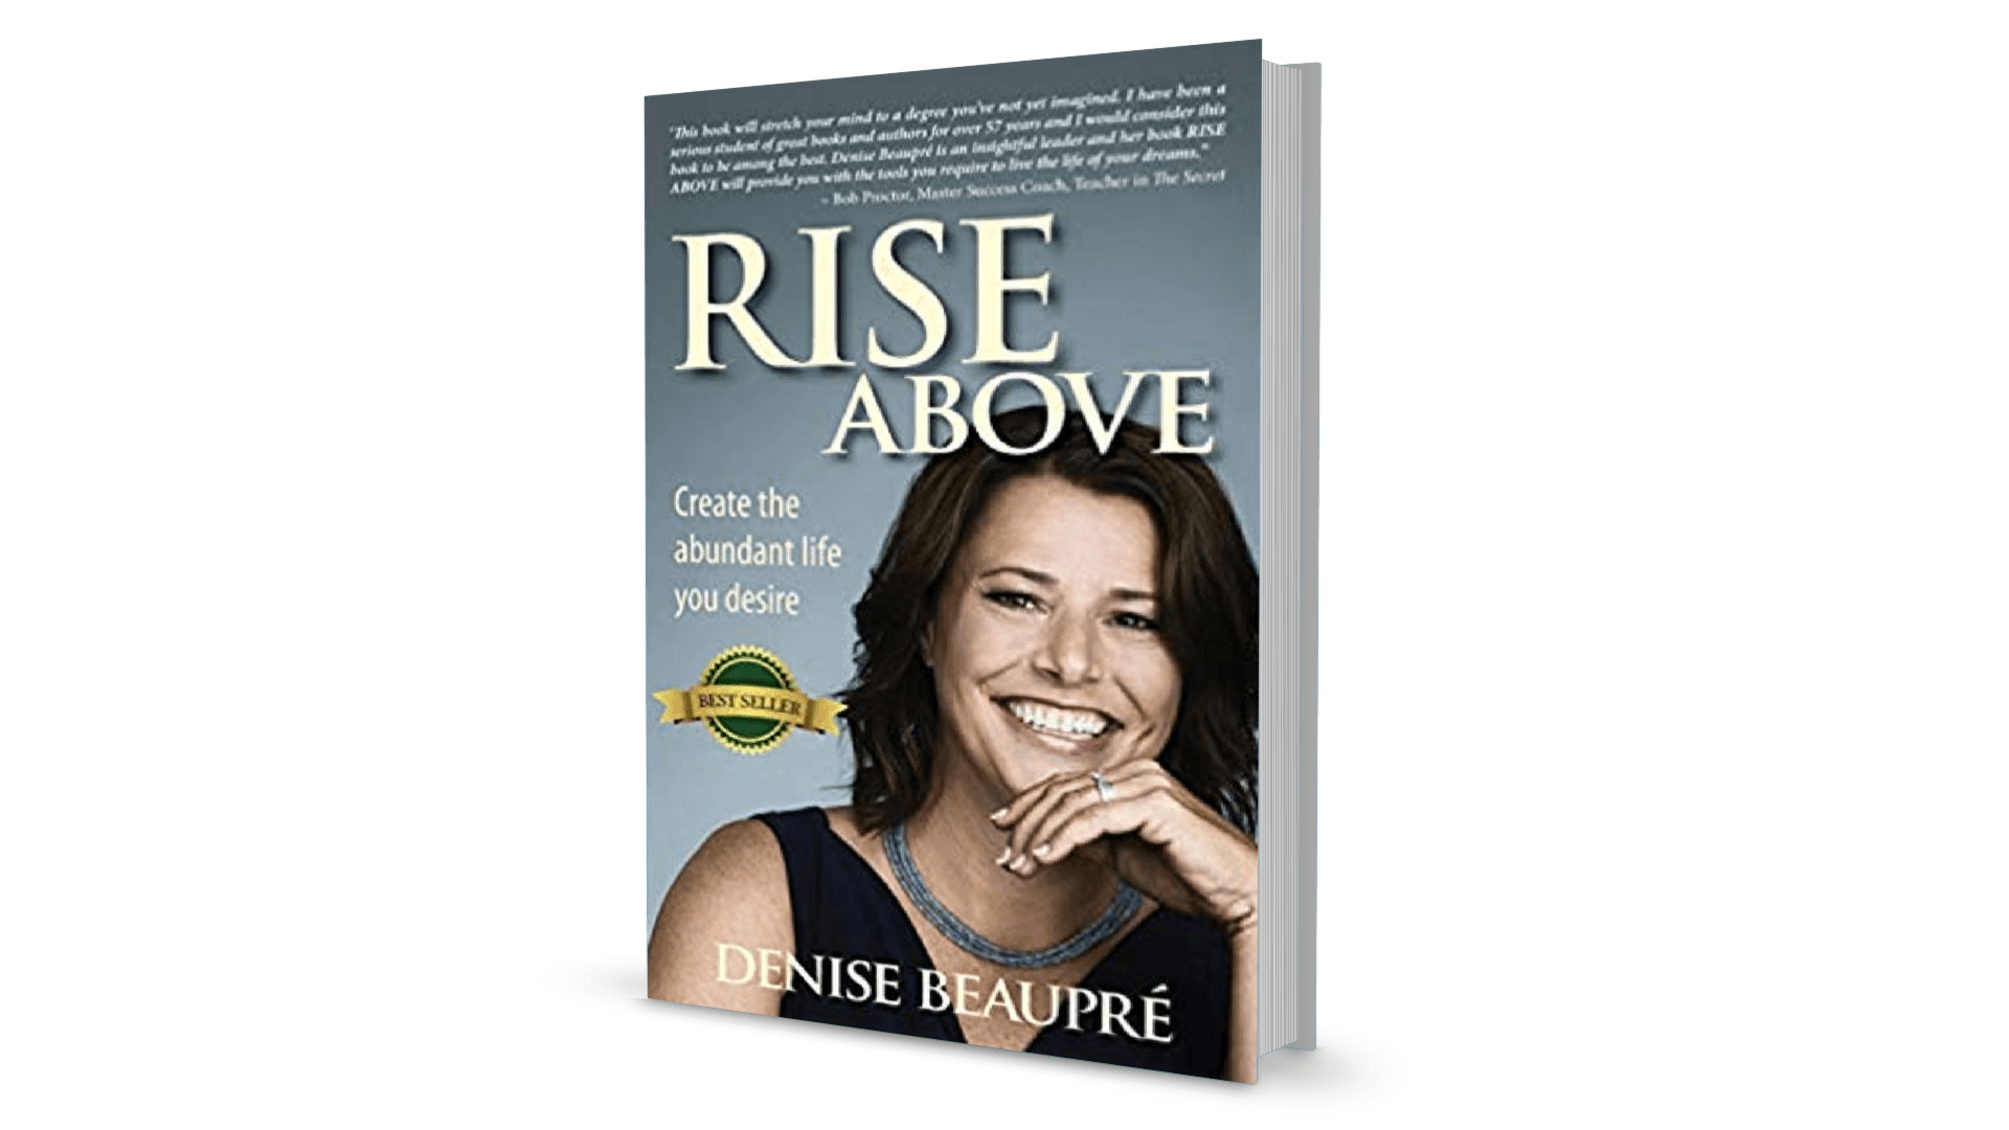 Rise Above book by Denise Beaupre